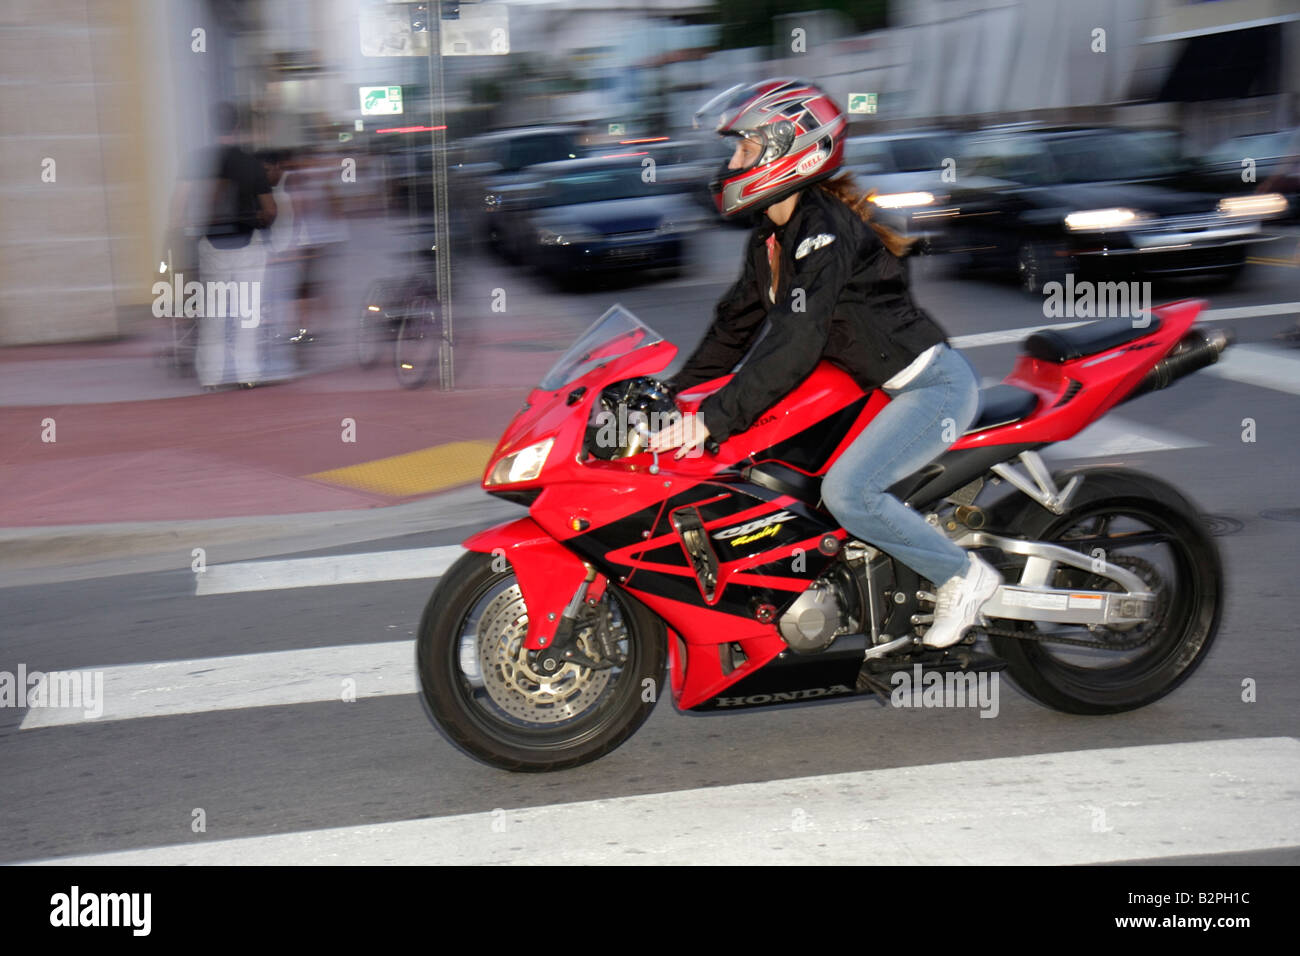 Miami Beach Florida Collins Avenue woman motorcycle bike crotch rocket red helmet motion two-wheel sports speed - Stock Image